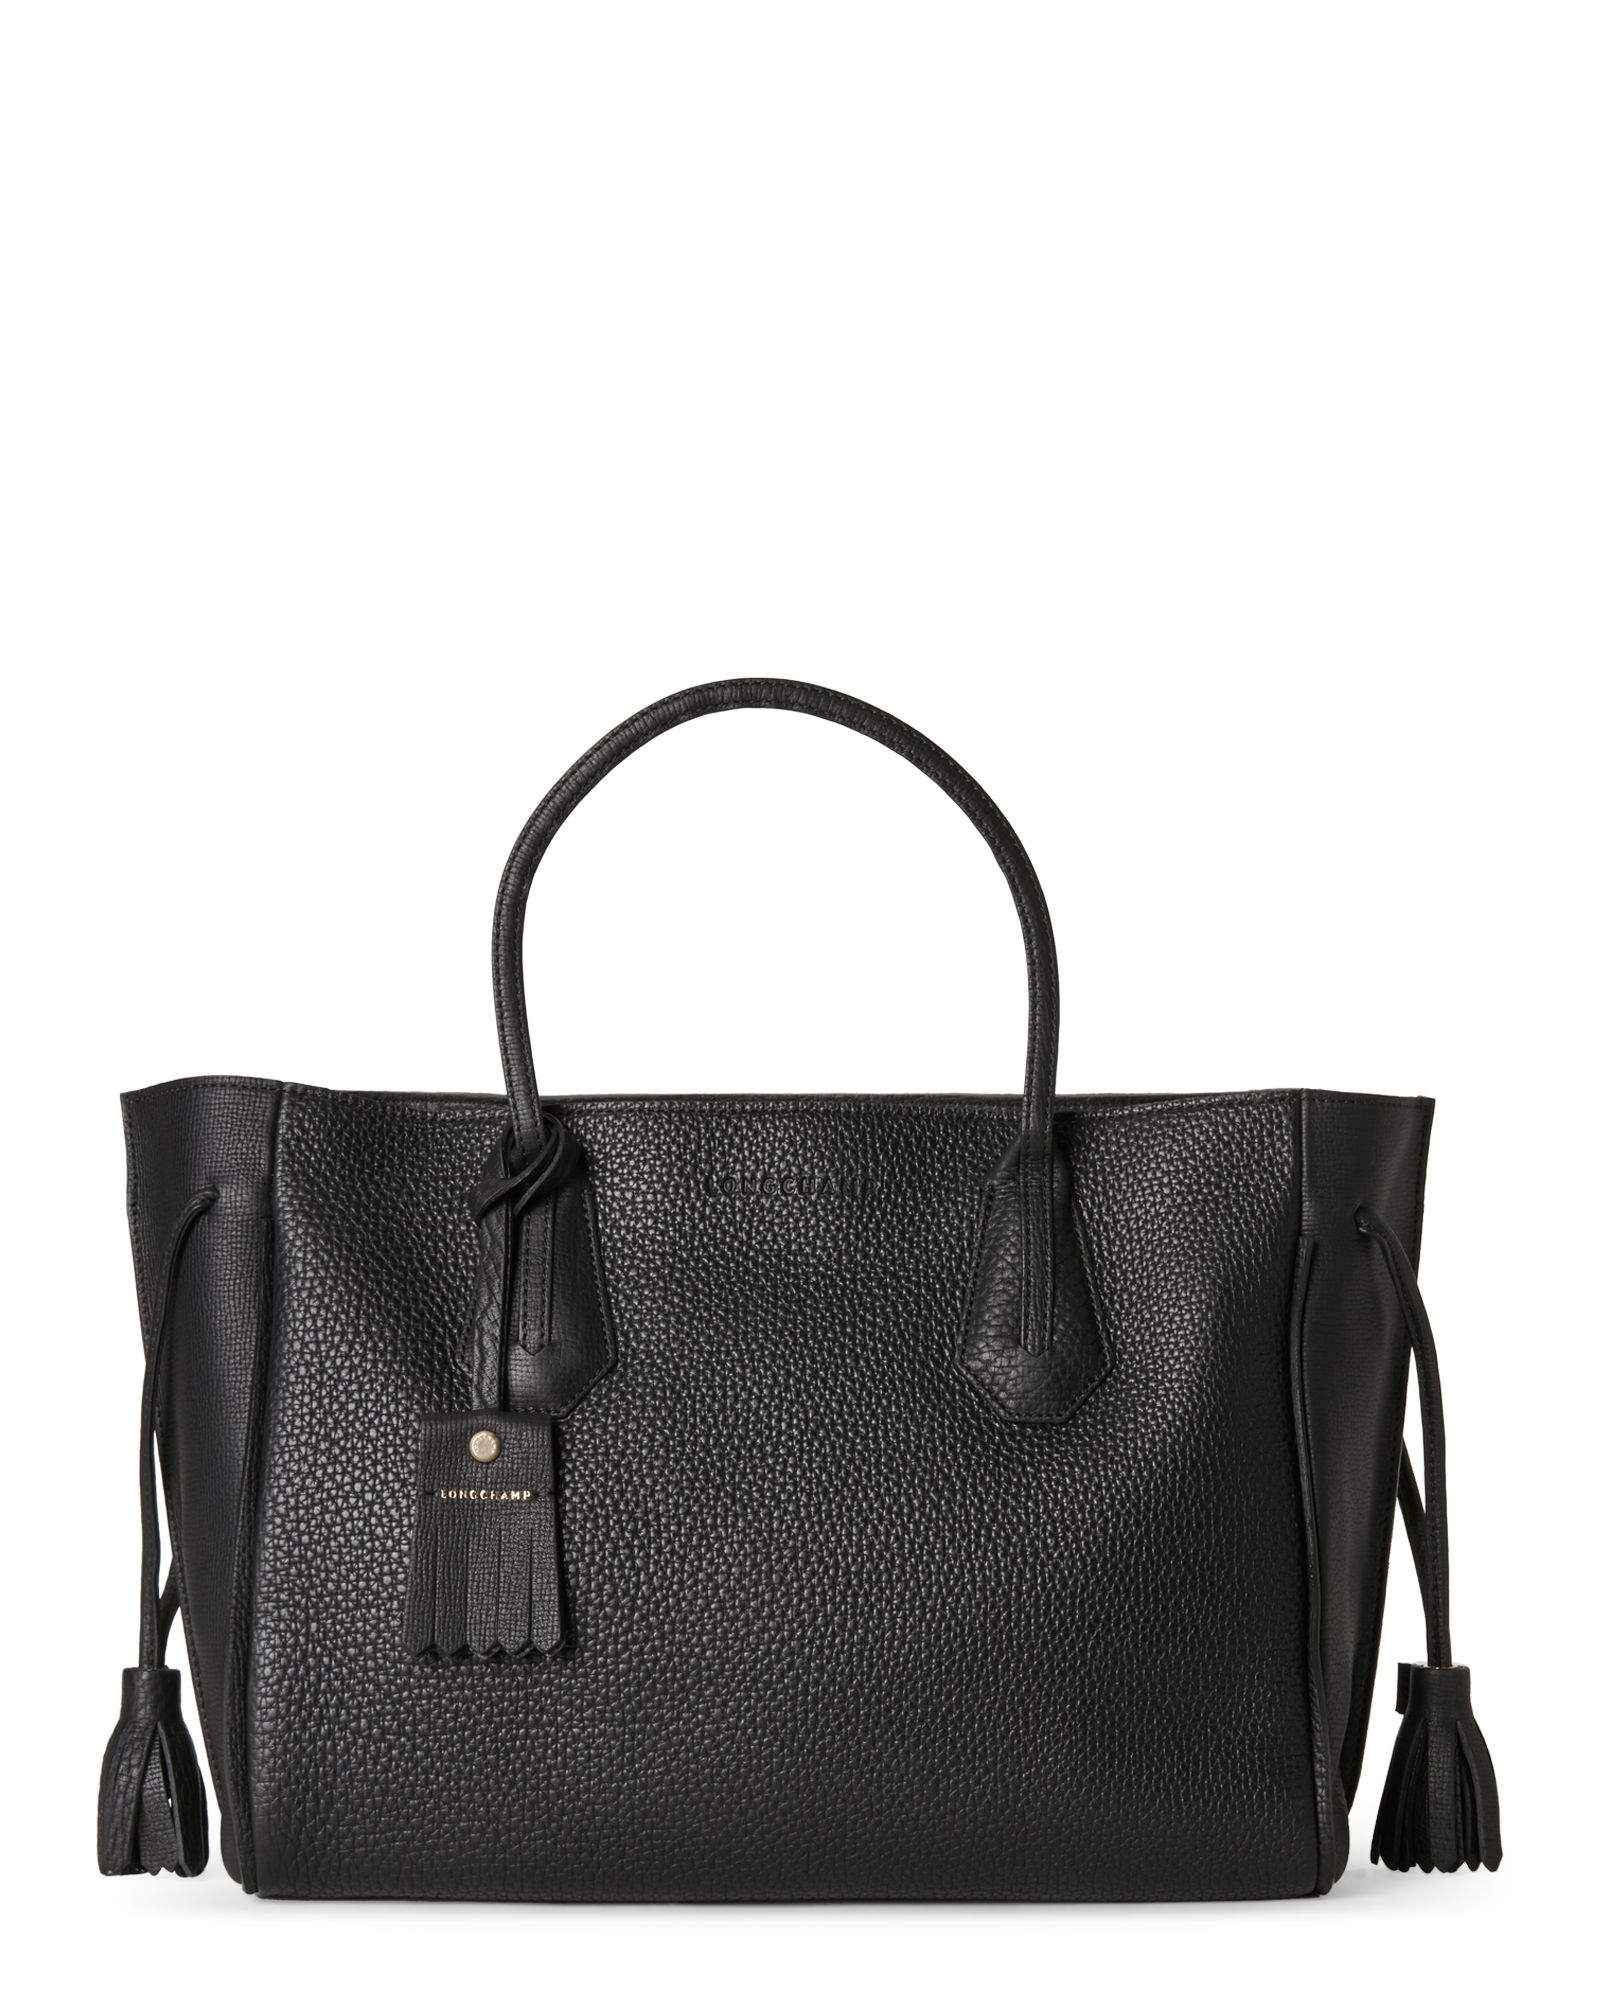 b01f21f9a7e3 Longchamp Black Pénélope Medium Tote Longchamp Black